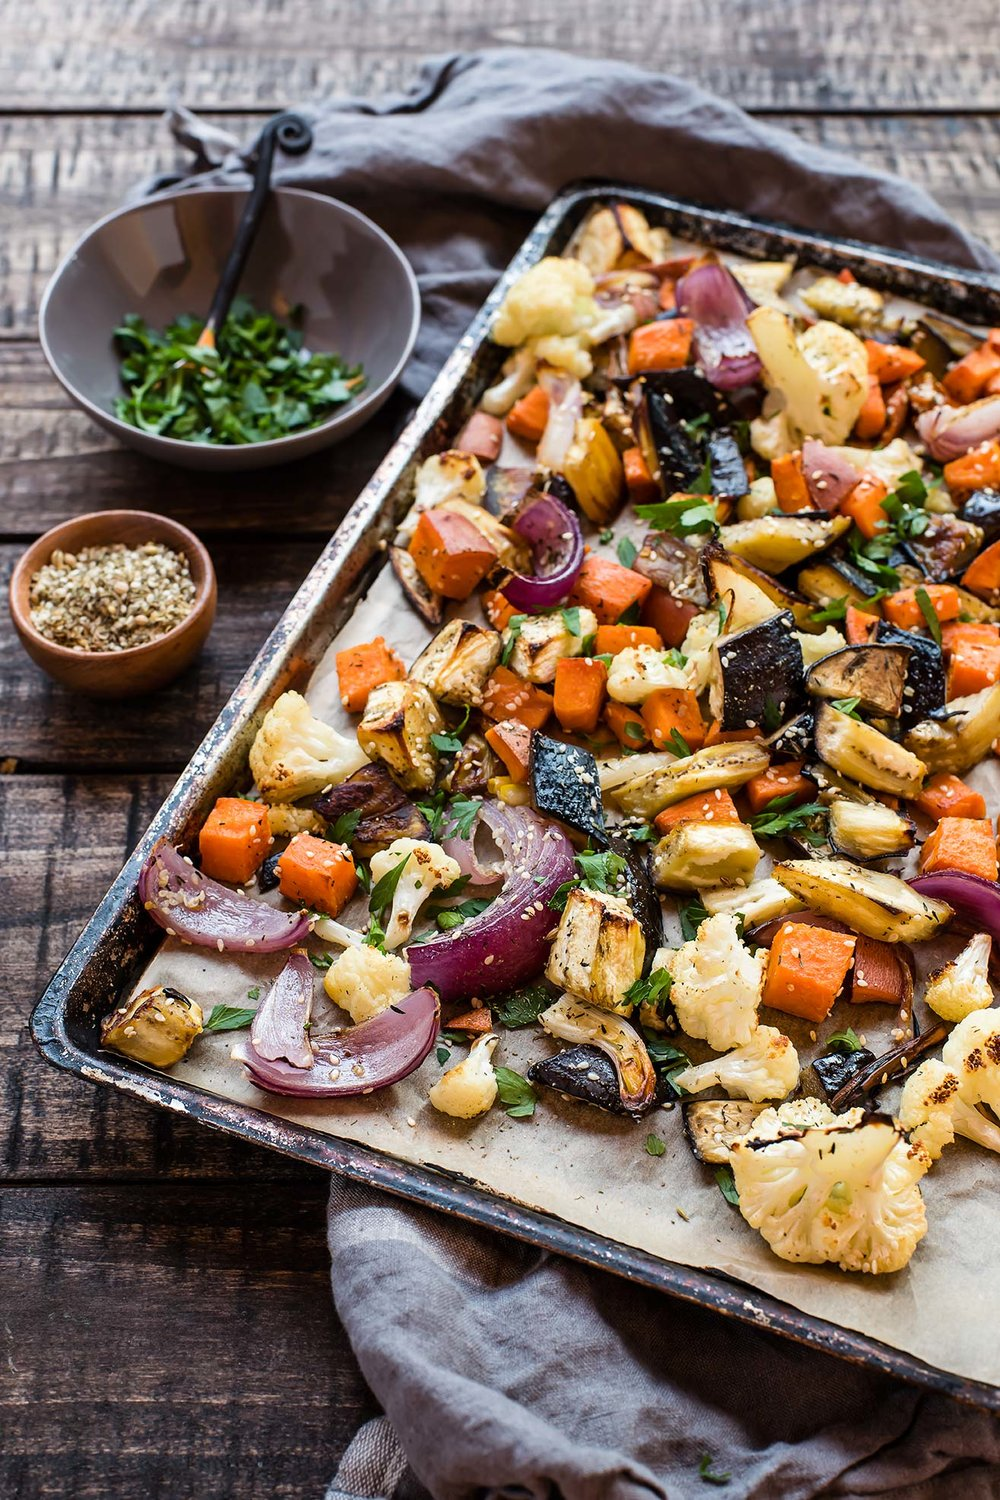 Za'atar Roasted Vegetables